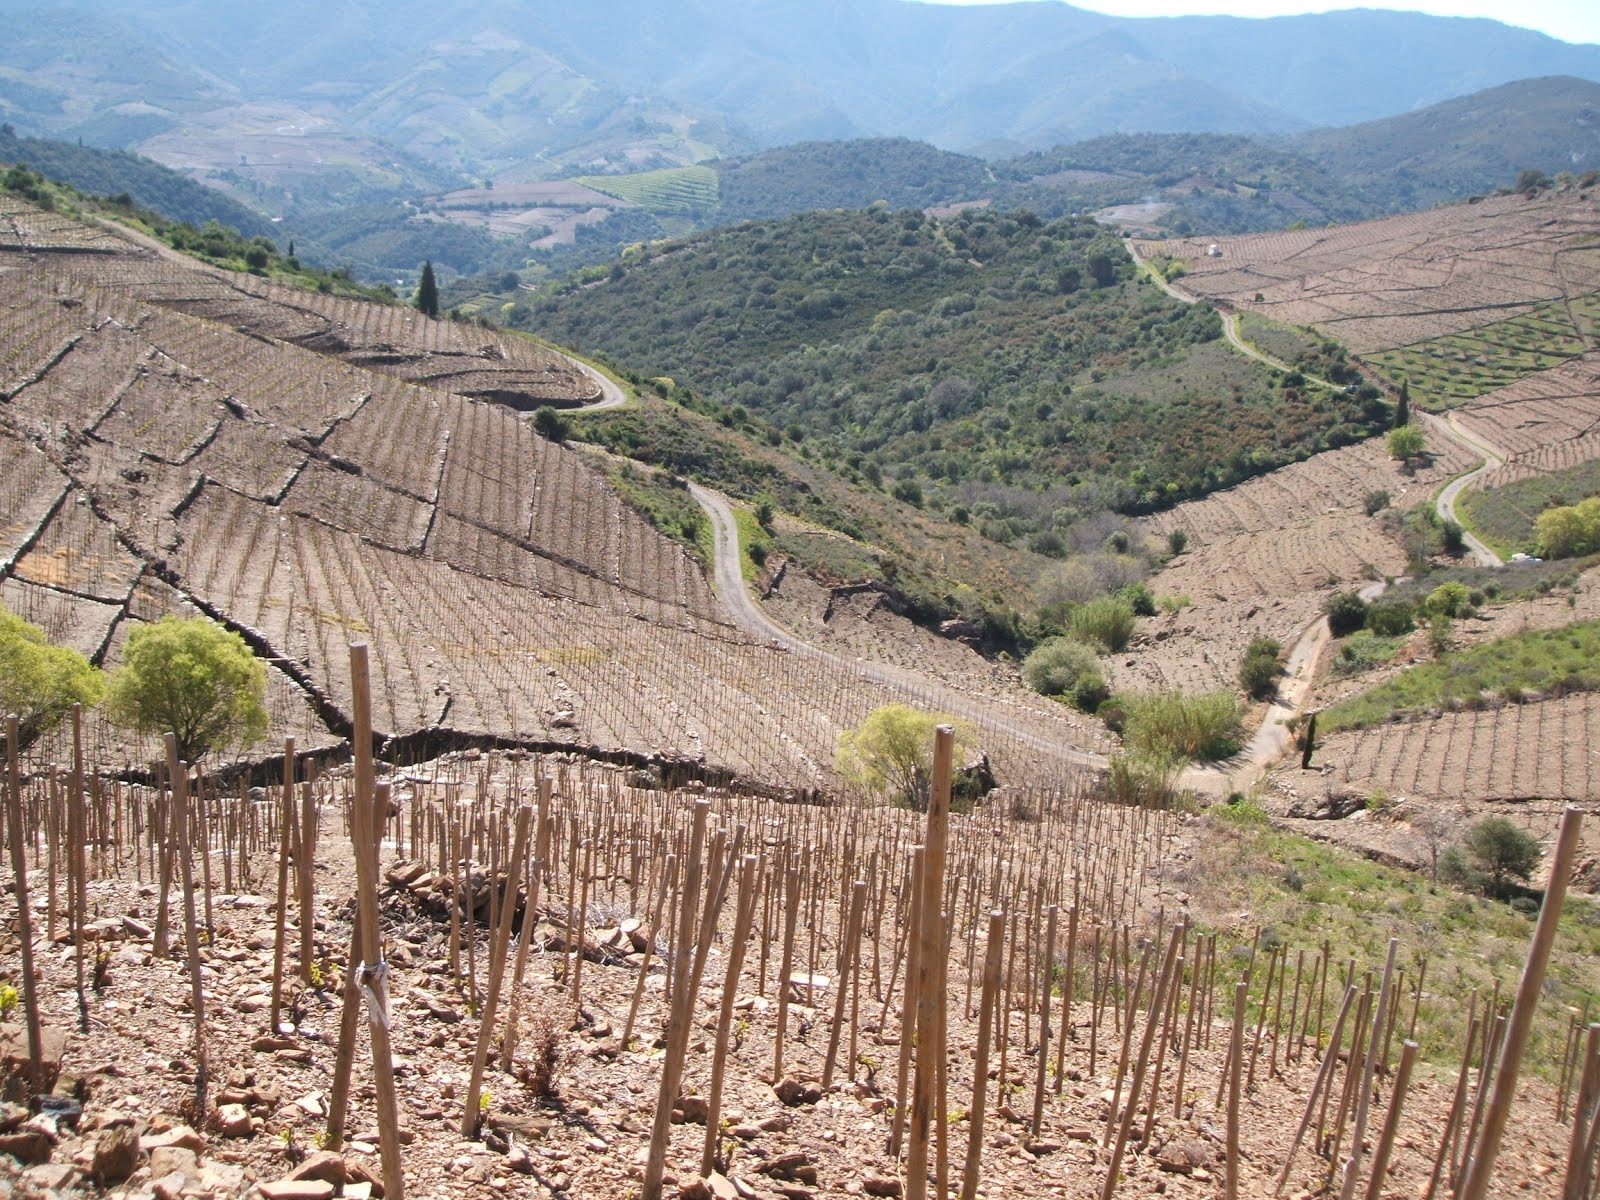 Vineyards: Banyuls-sur-Mer, Roussillon